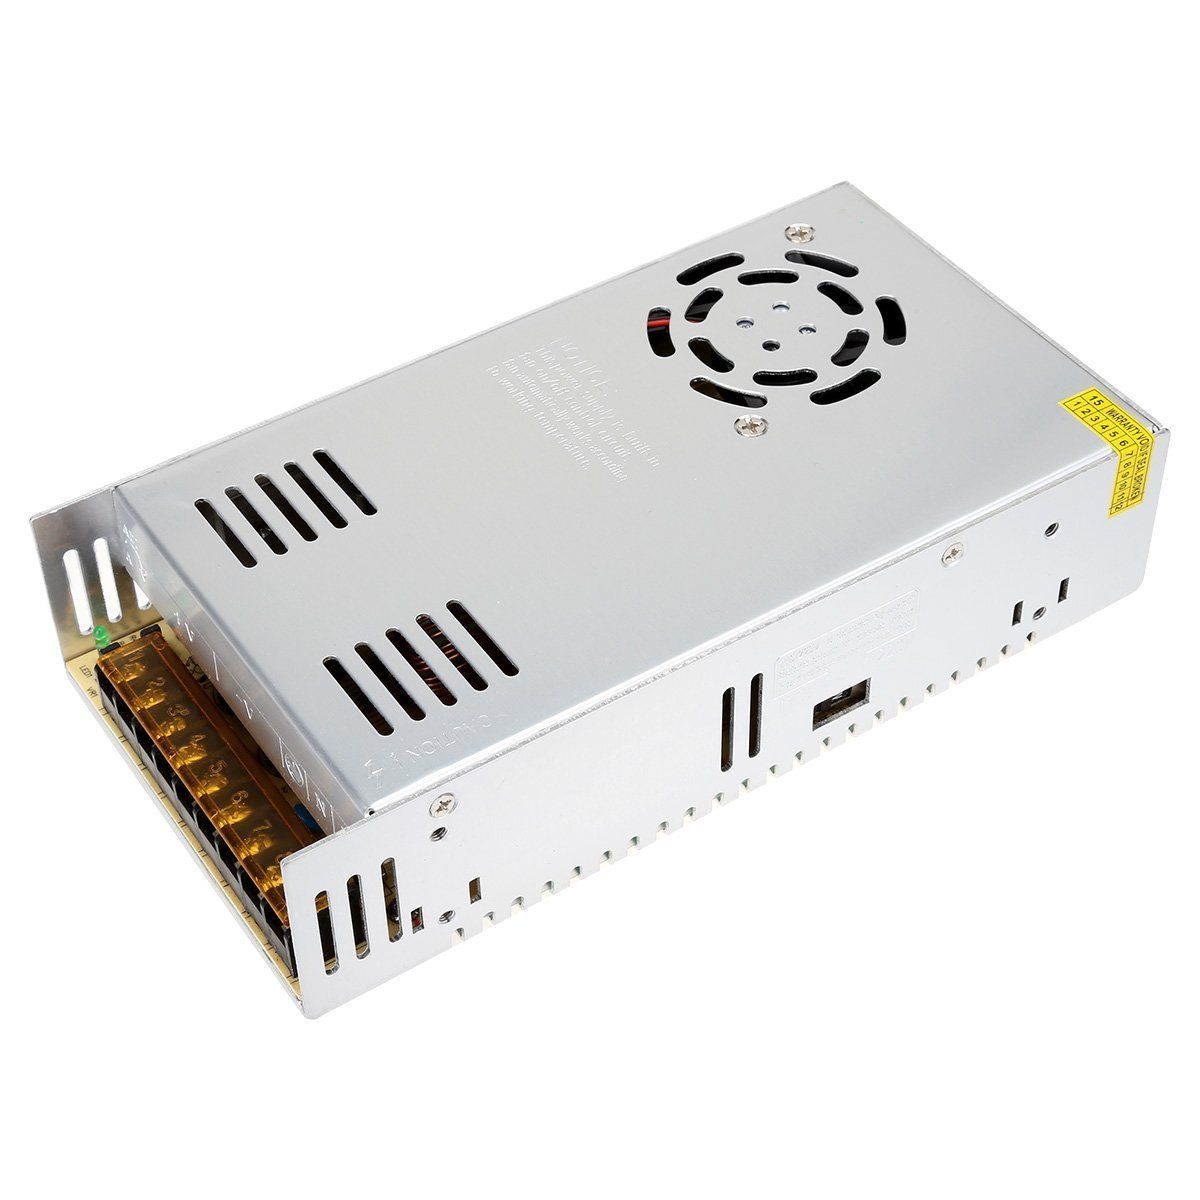 Rextin DC 12V 400W 33A Regulated Transformer Power Supply Driver SW For LED Strip Lights (400W)